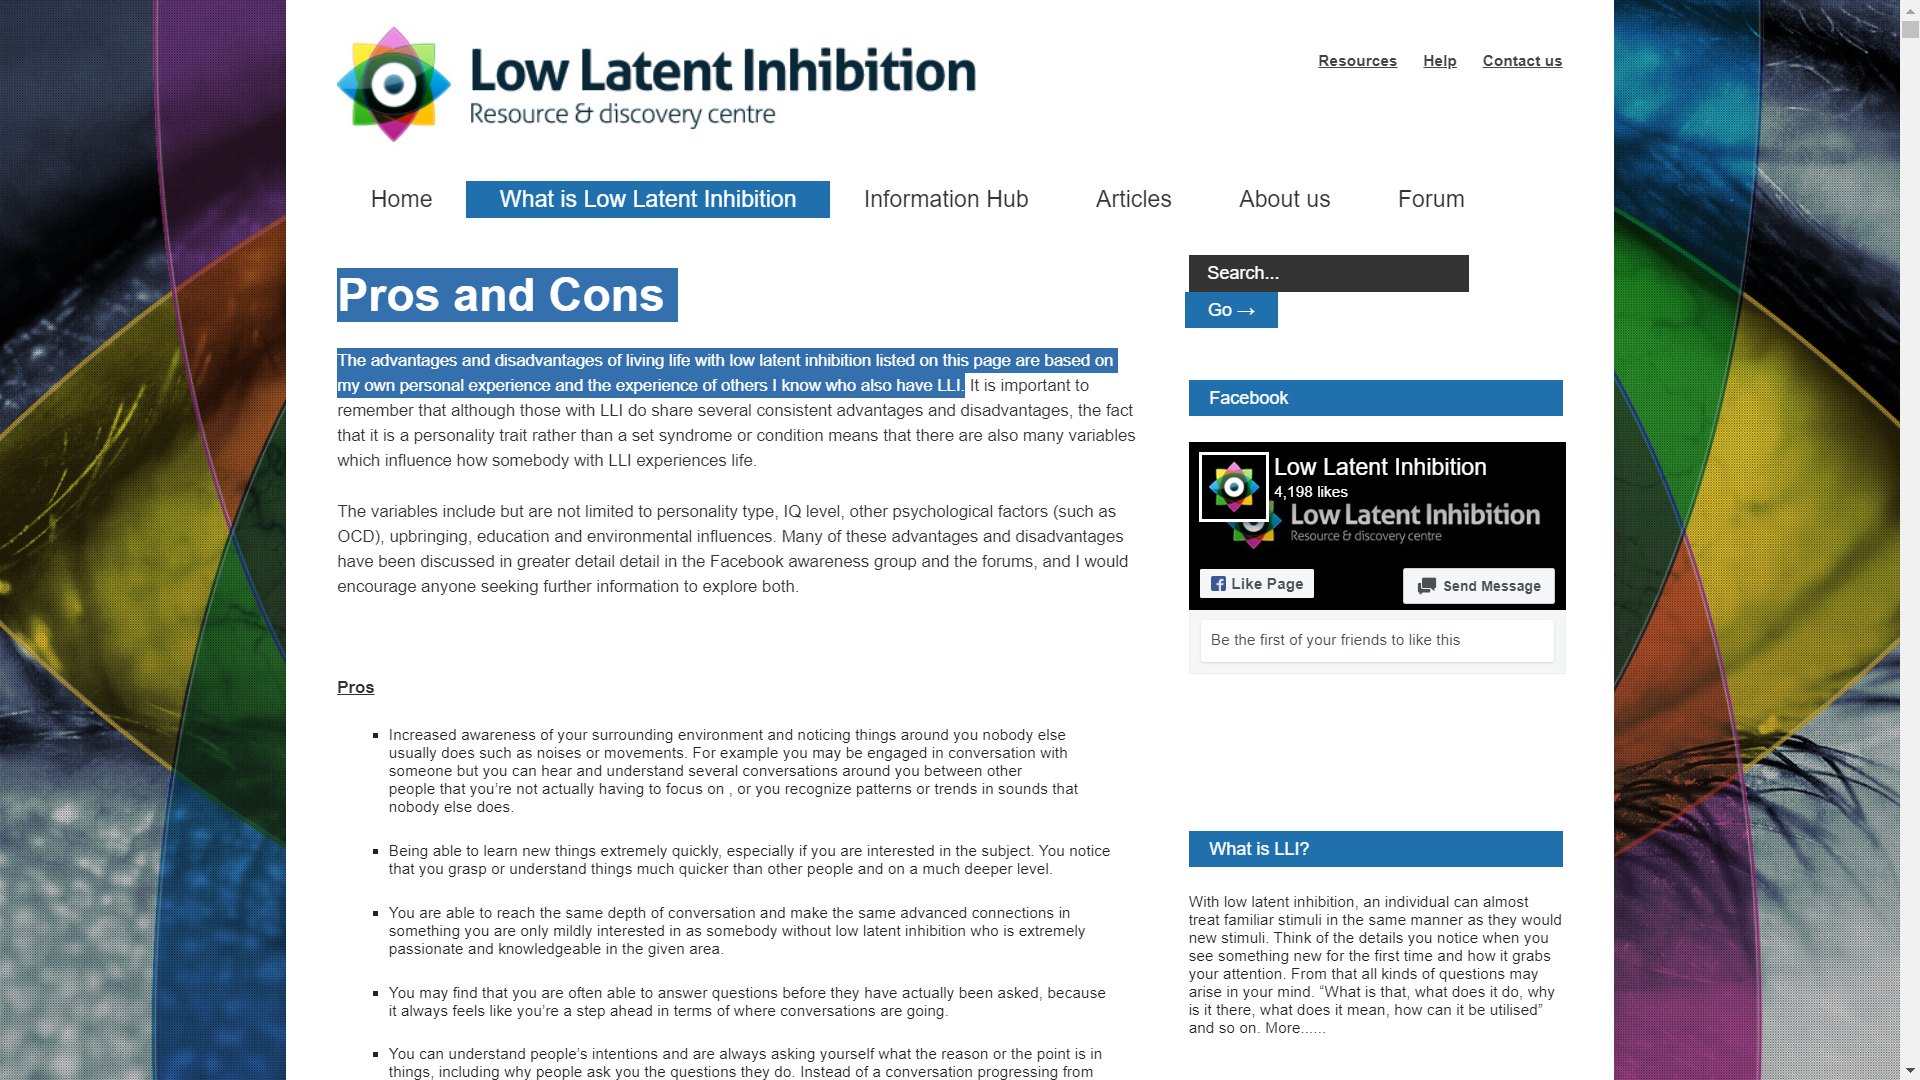 The advantages and disadvantages of living life with low latent inhibition listed on this page are based on my own personal experience and the experience of others I know who also have LLI.